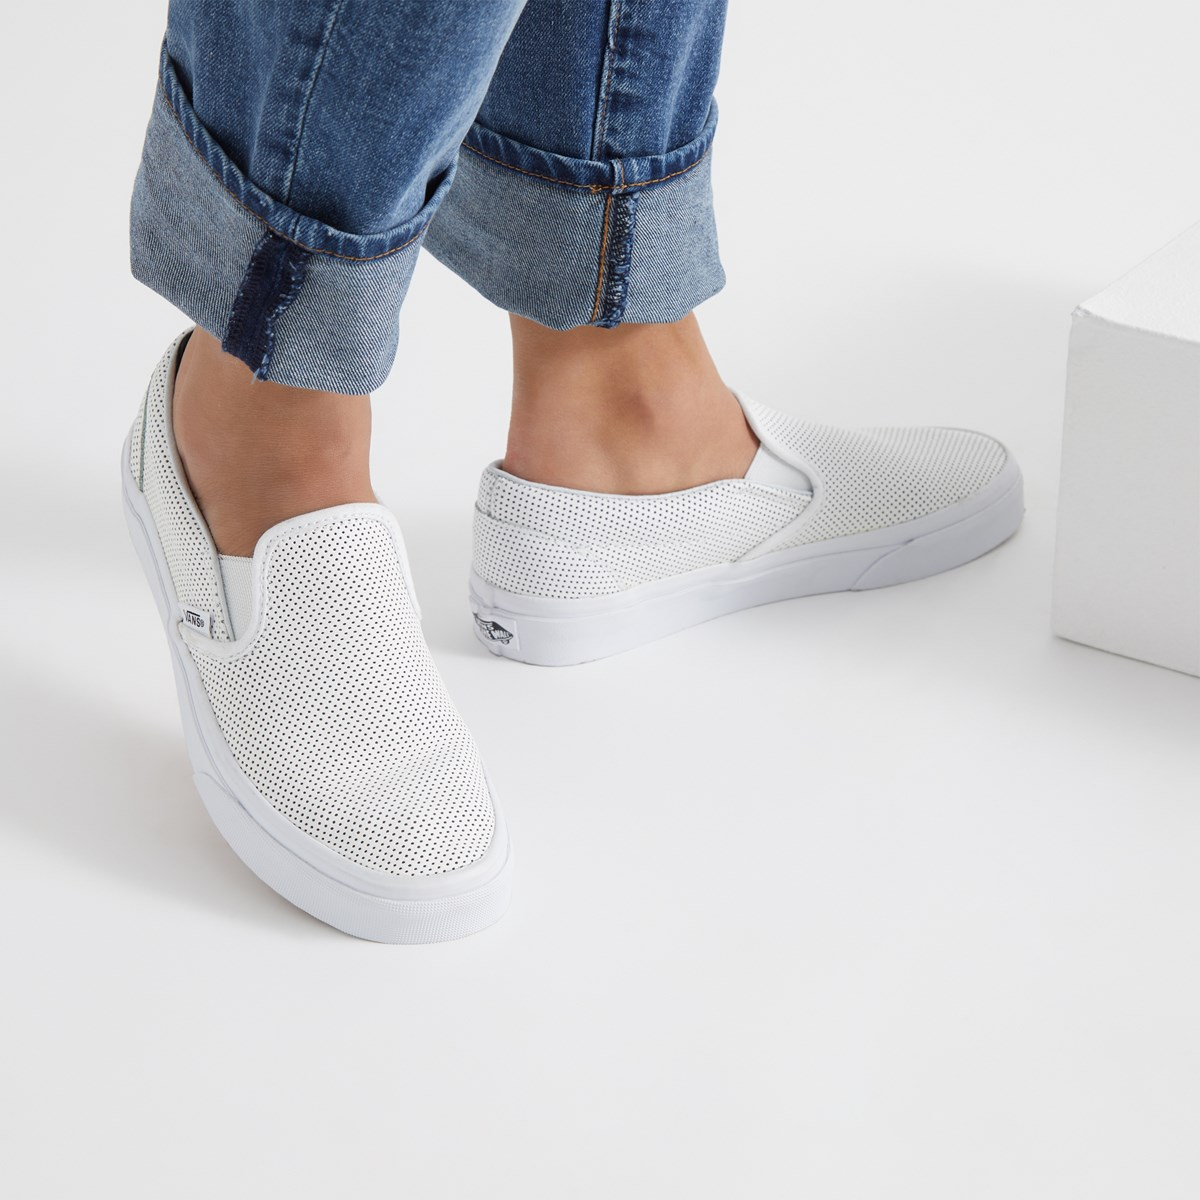 e688b2f01a Women s Classic Perforated Leather Slip-On. Previous. default ...